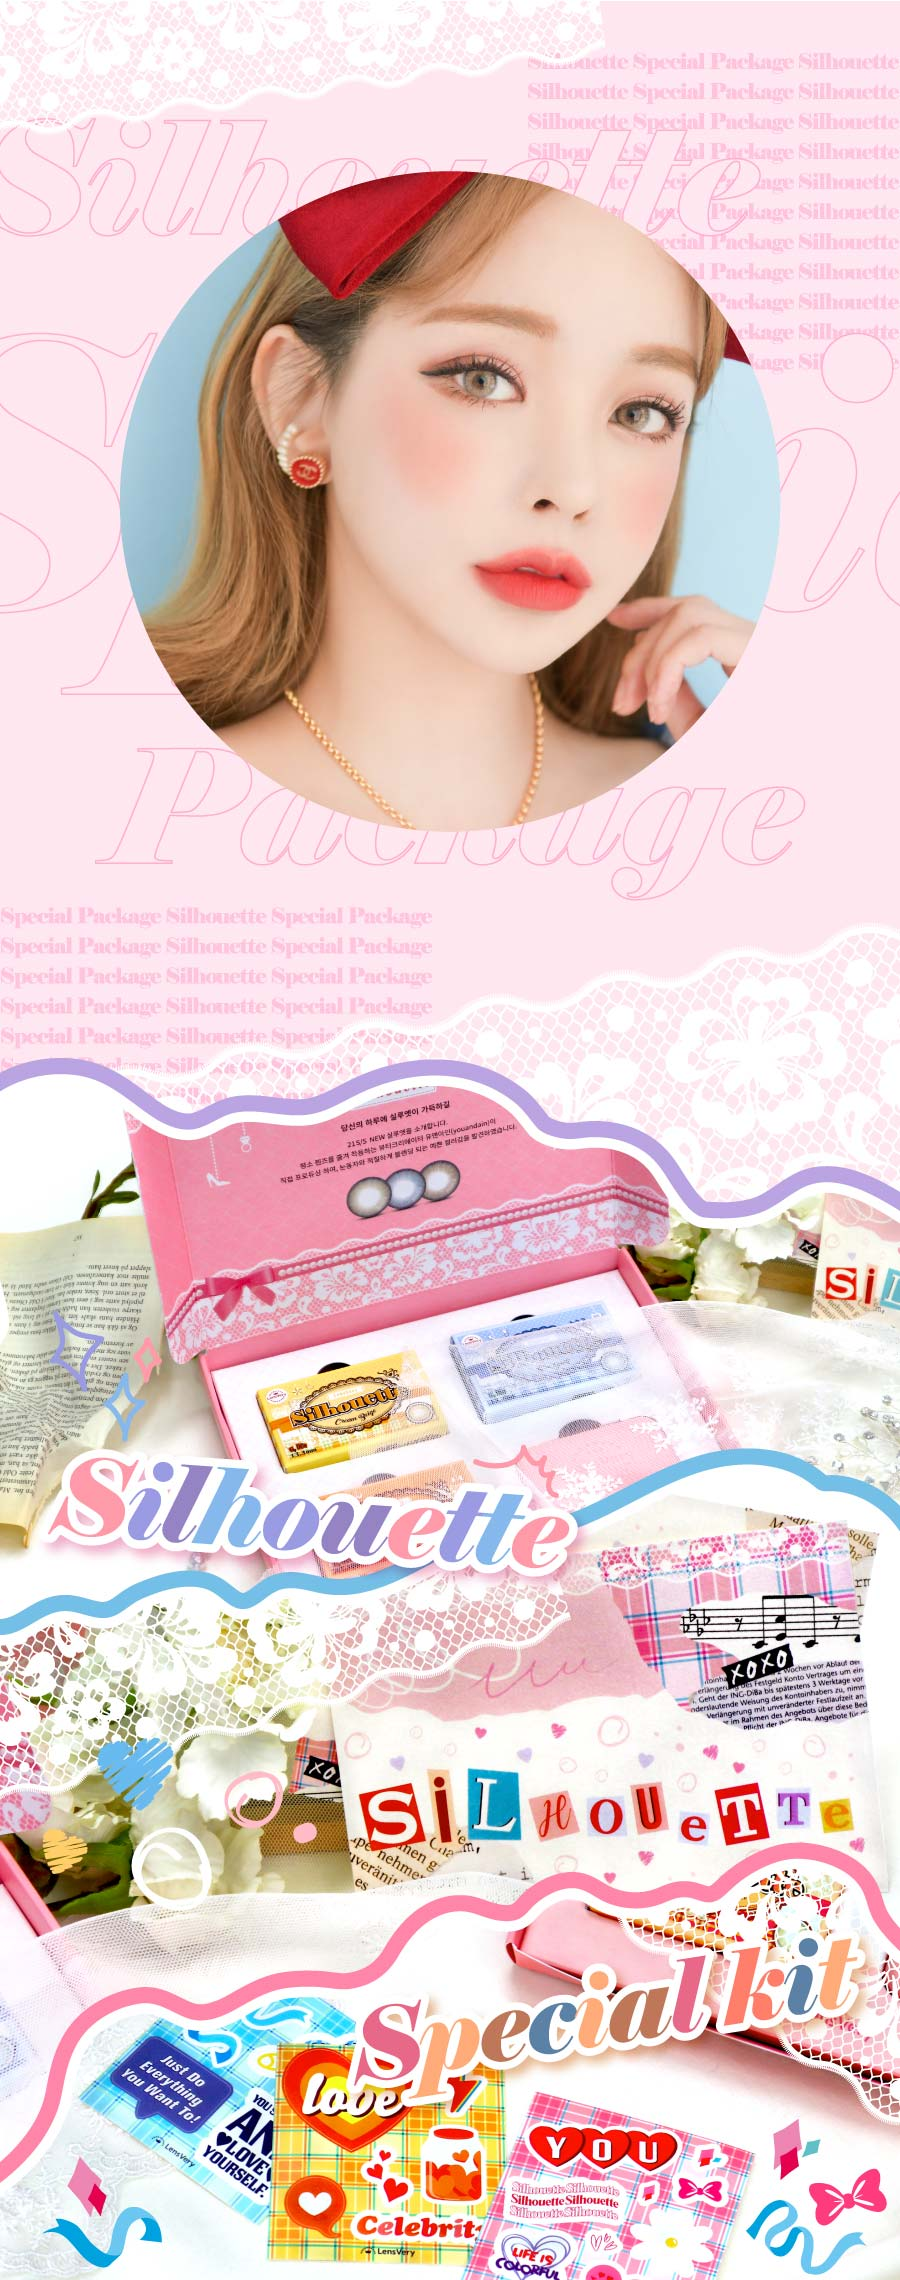 silhouette-monthly-special-package-korean-colored-lenses6.jpg